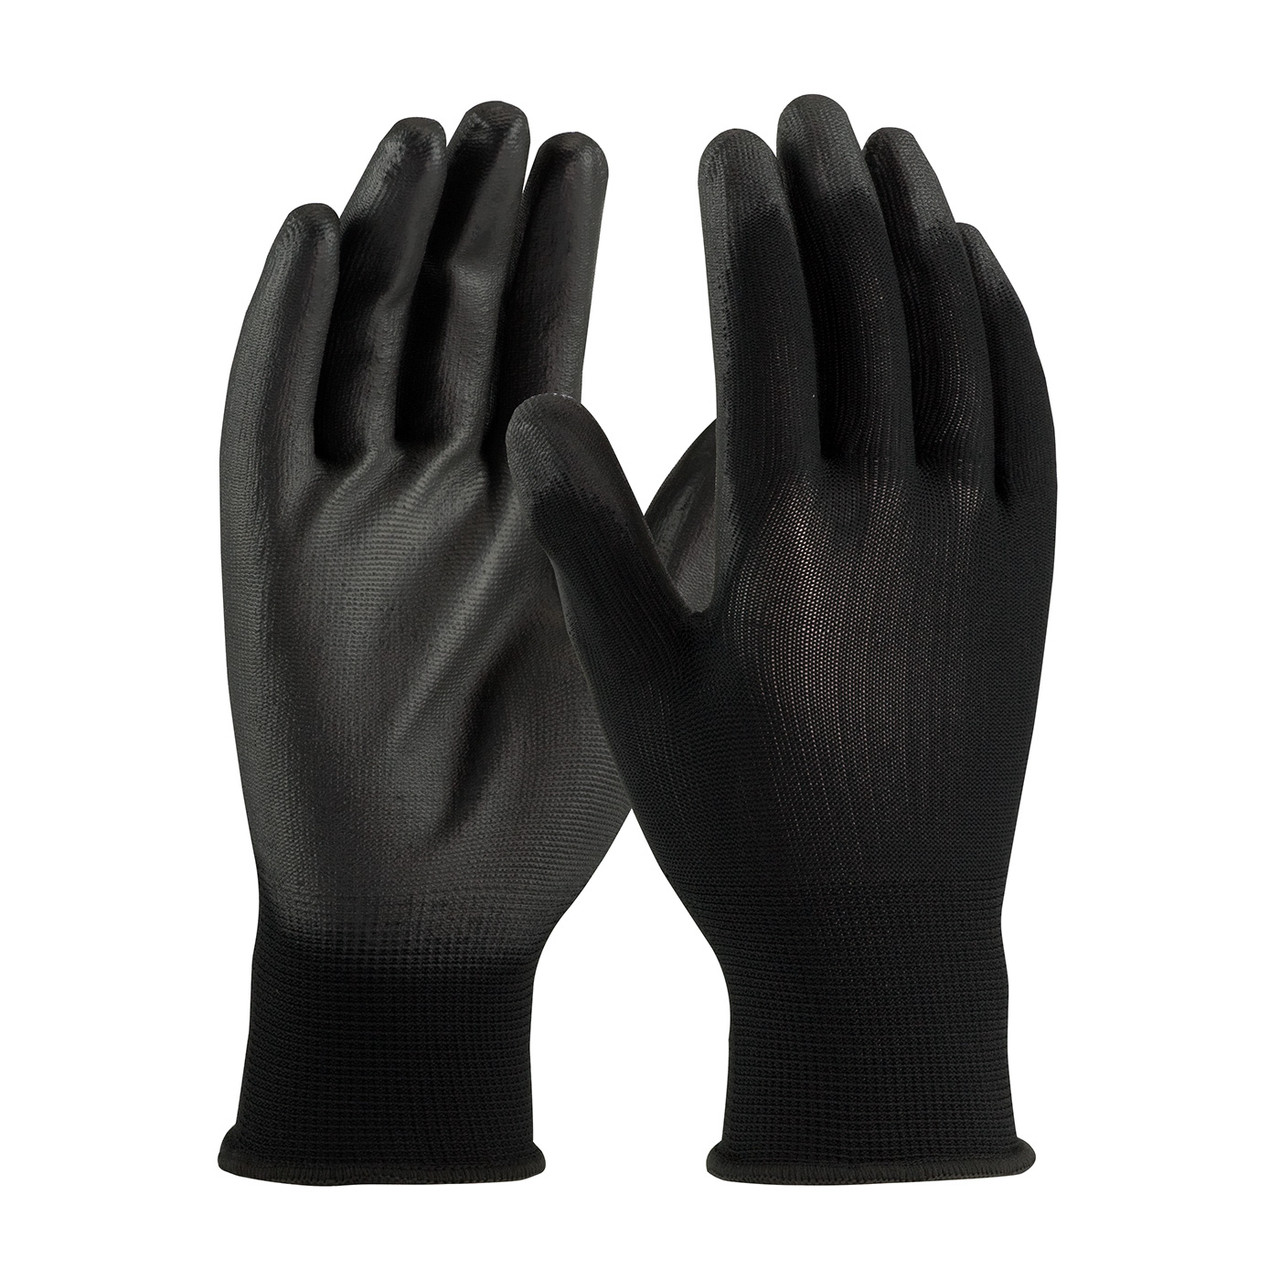 PIP Seamless Knit Polyester Glove with Polyurethane Coated Flat Grip X-LARGE EDP: 33-B115